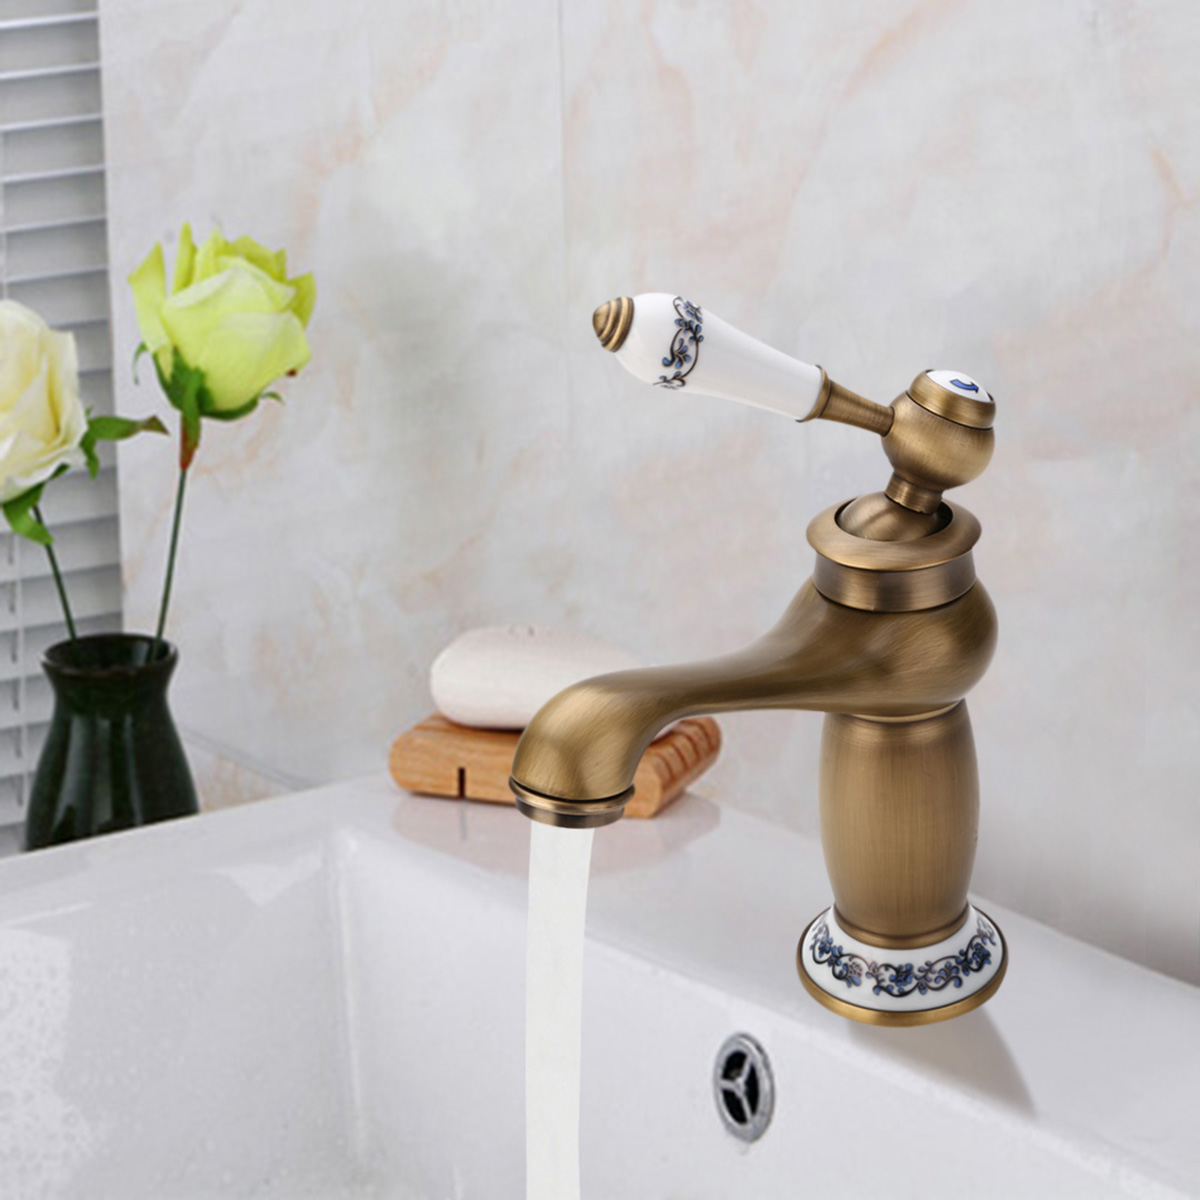 High Quality Antique Kitchen Bathroom Faucet Single Hand Hot & Cold Mixer Tap Ceramic Handle Mayitr Hot SellingHigh Quality Antique Kitchen Bathroom Faucet Single Hand Hot & Cold Mixer Tap Ceramic Handle Mayitr Hot Selling